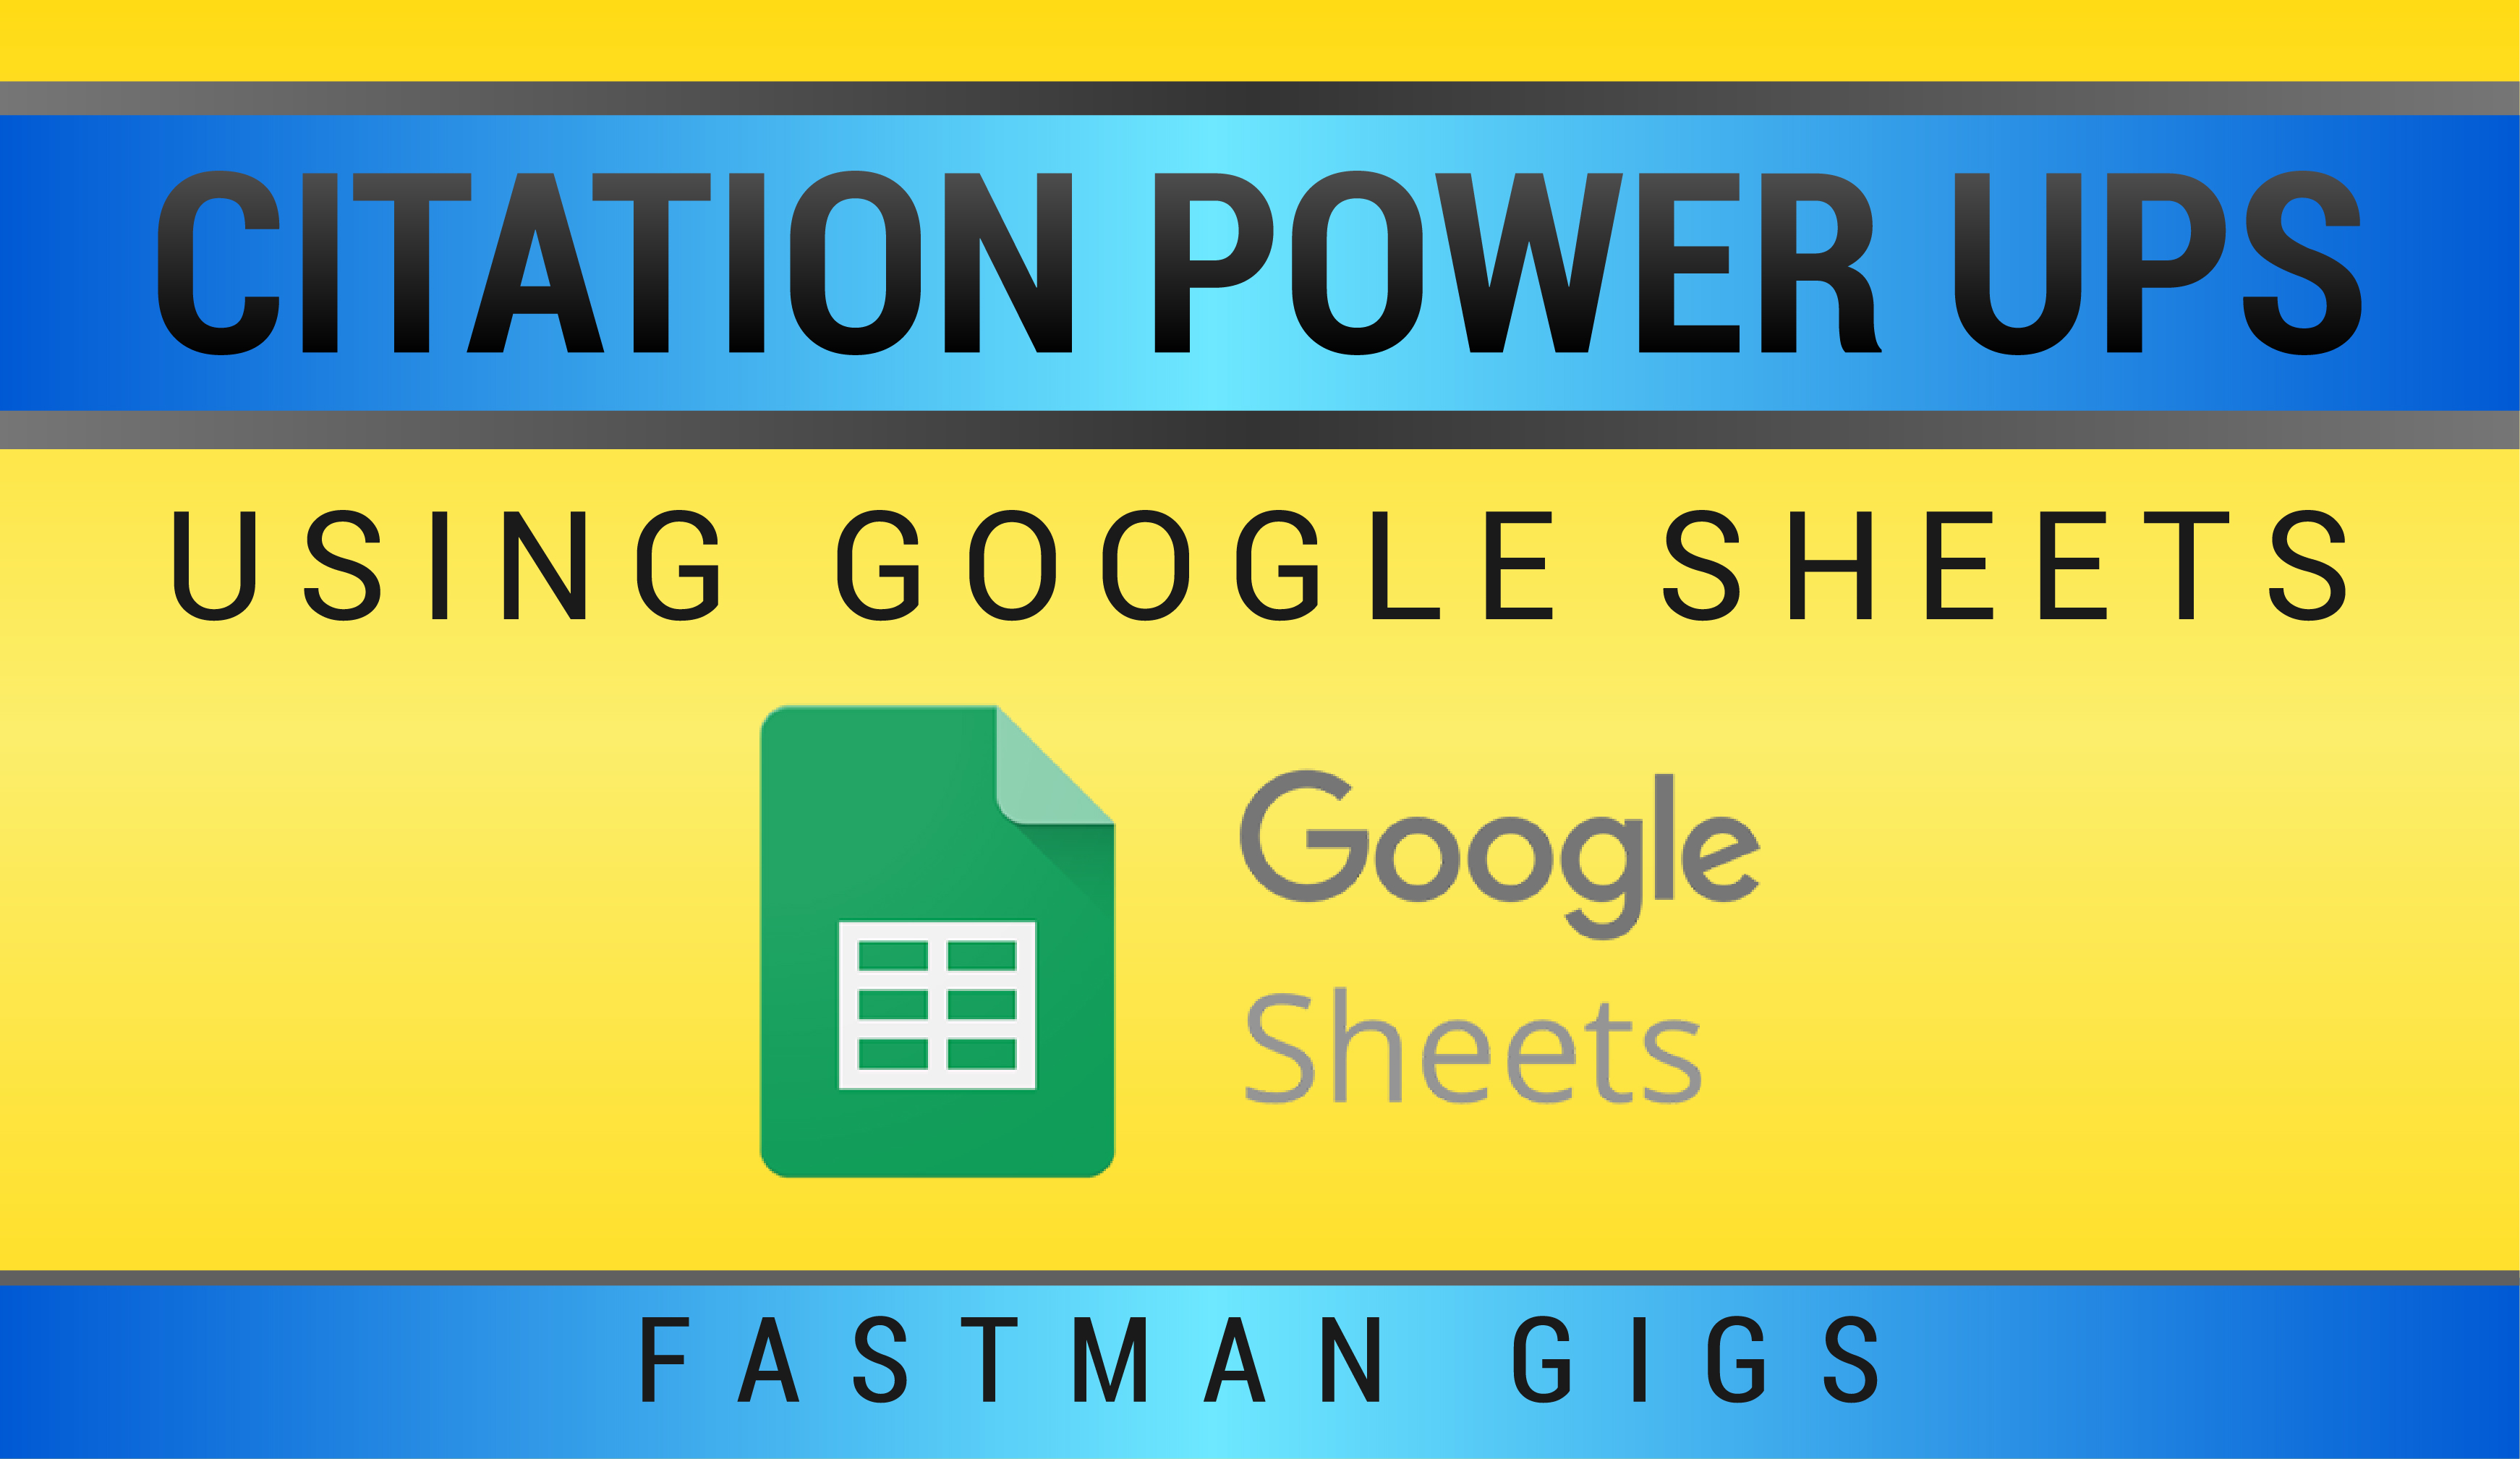 Citation Power Ups using sheets